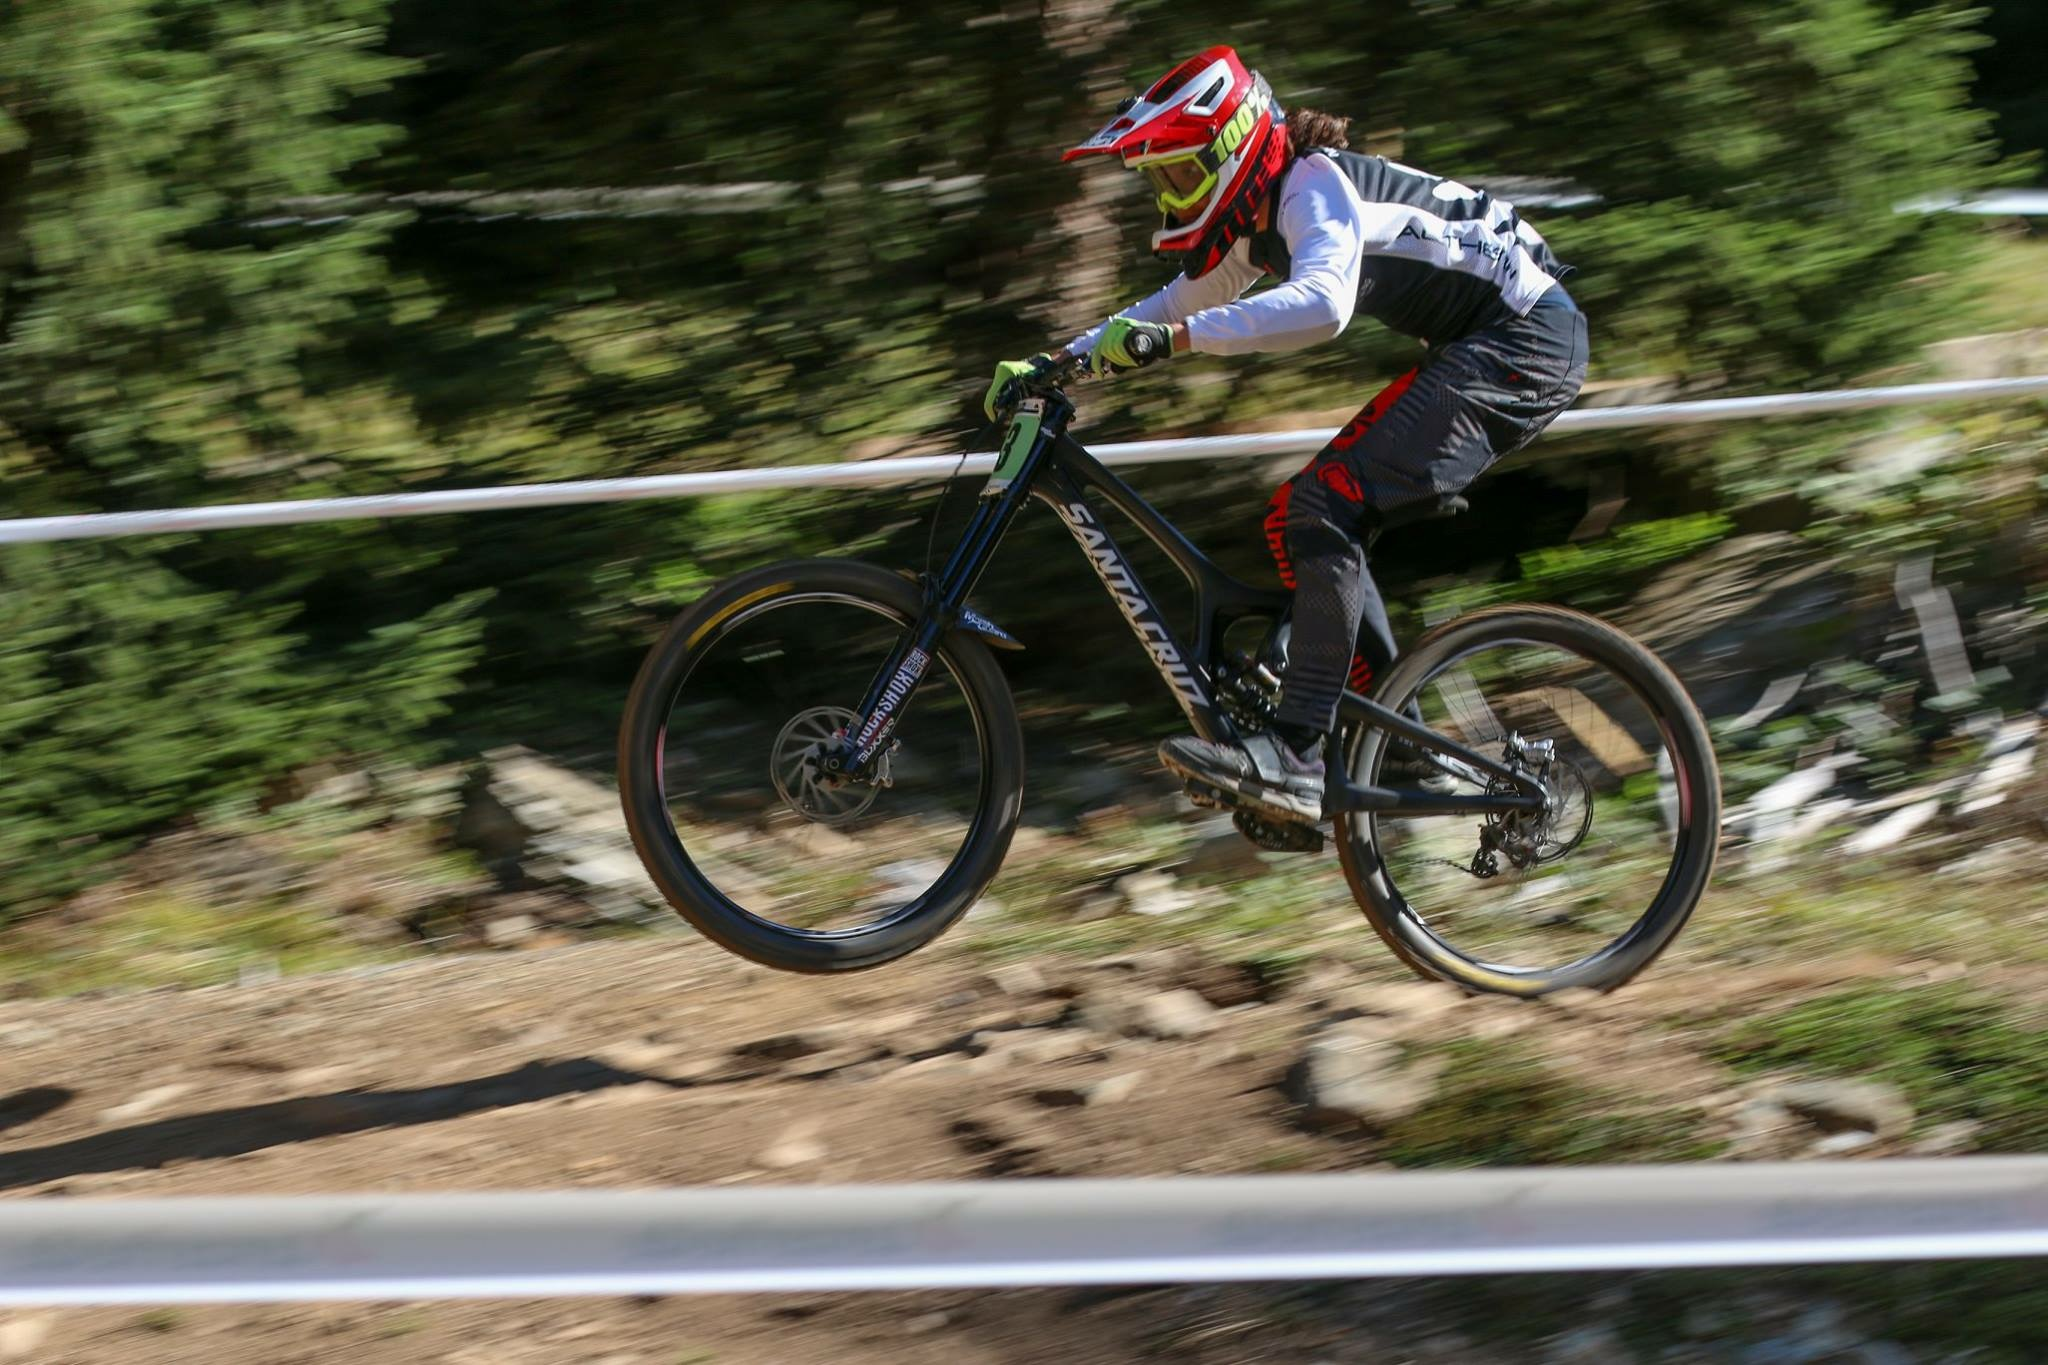 Tuhoto is so chill he wont be phased by the perceived seriousness of the world stage. Here he is charging to a 7th place finish in his first World Championship's race as a junior (Lenzerheide, Switzerland, 2018).